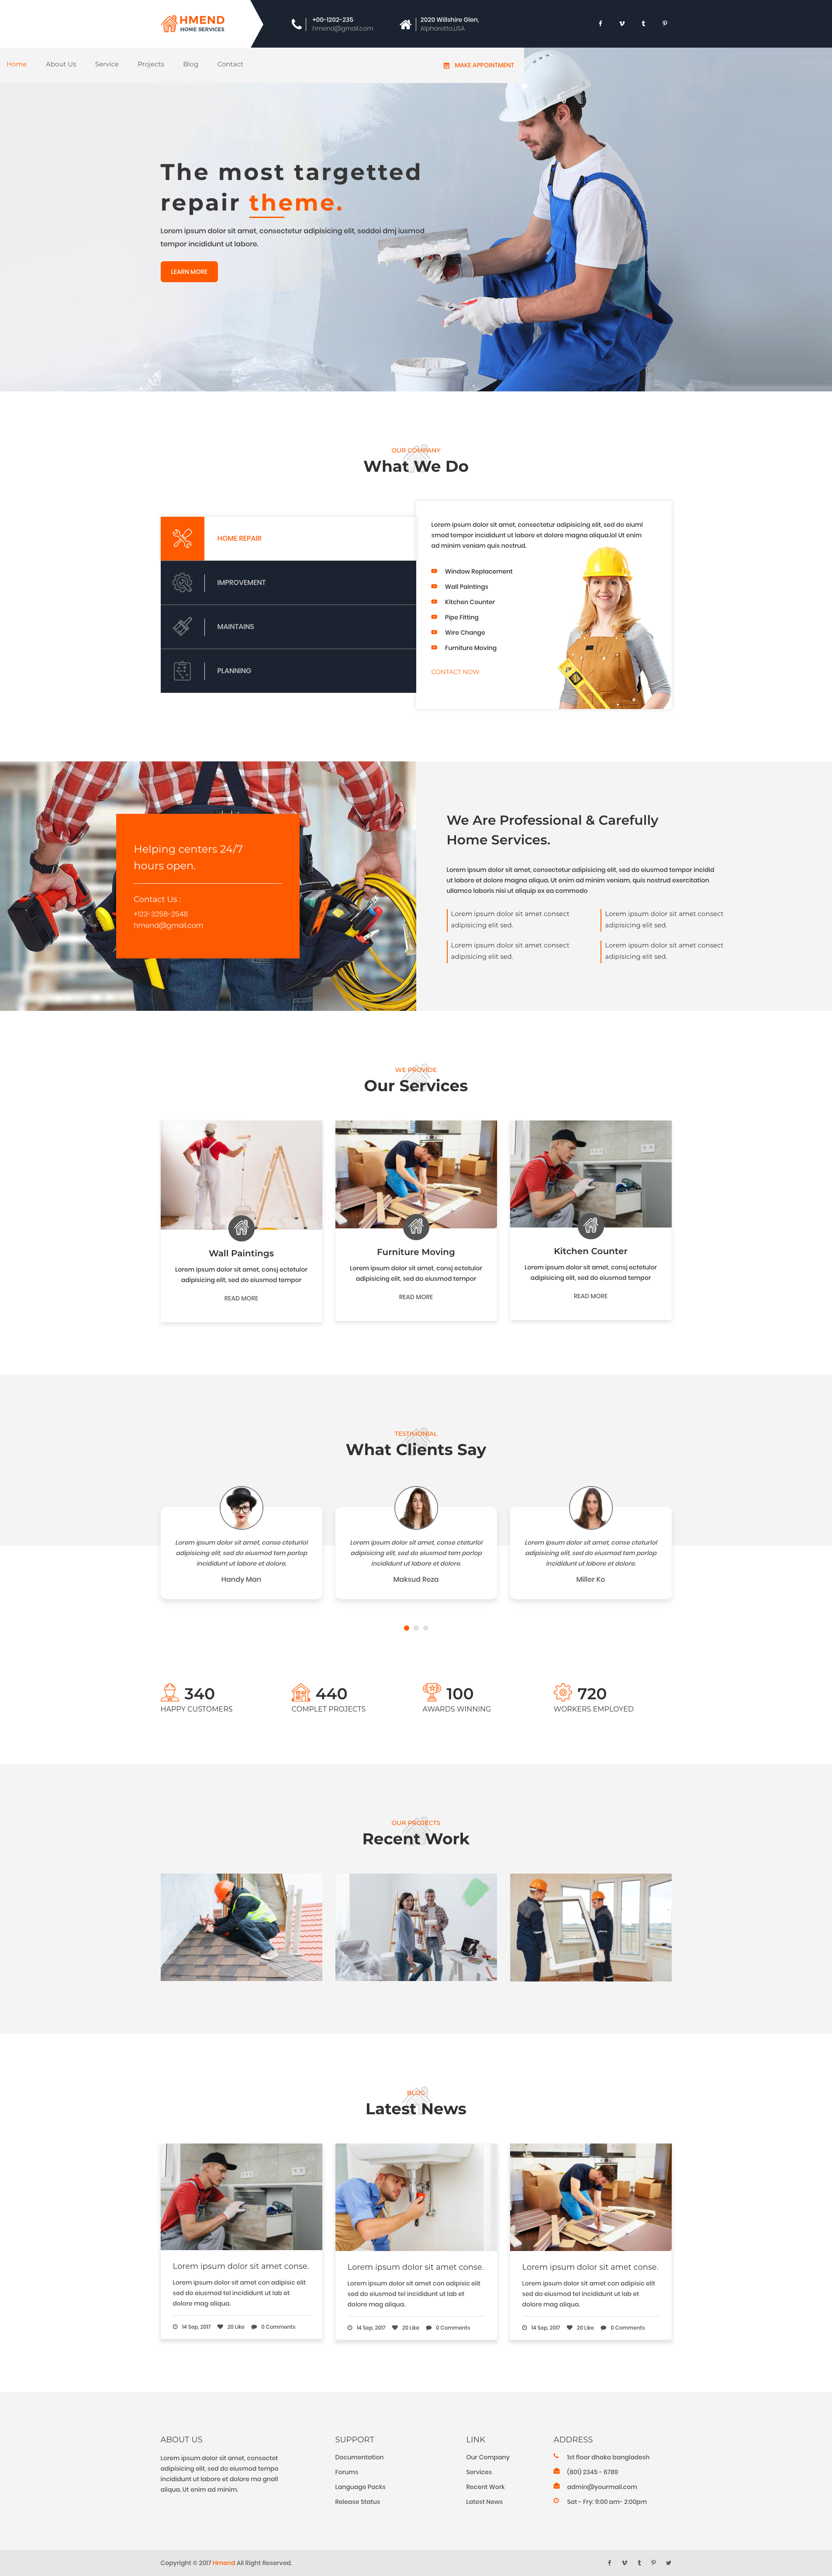 Hmend - Home Maintenance, Repair Service HTML Template. It is built on security home design, virtual home design, creative home design, computer home design, global home design, digital home design, ecological home design, design home design, historical home design, basic home design, painting home design, interactive home design, motor home design, revit home design, lighting home design, external home design, art home design, medical home design, practical home design, functional home design,